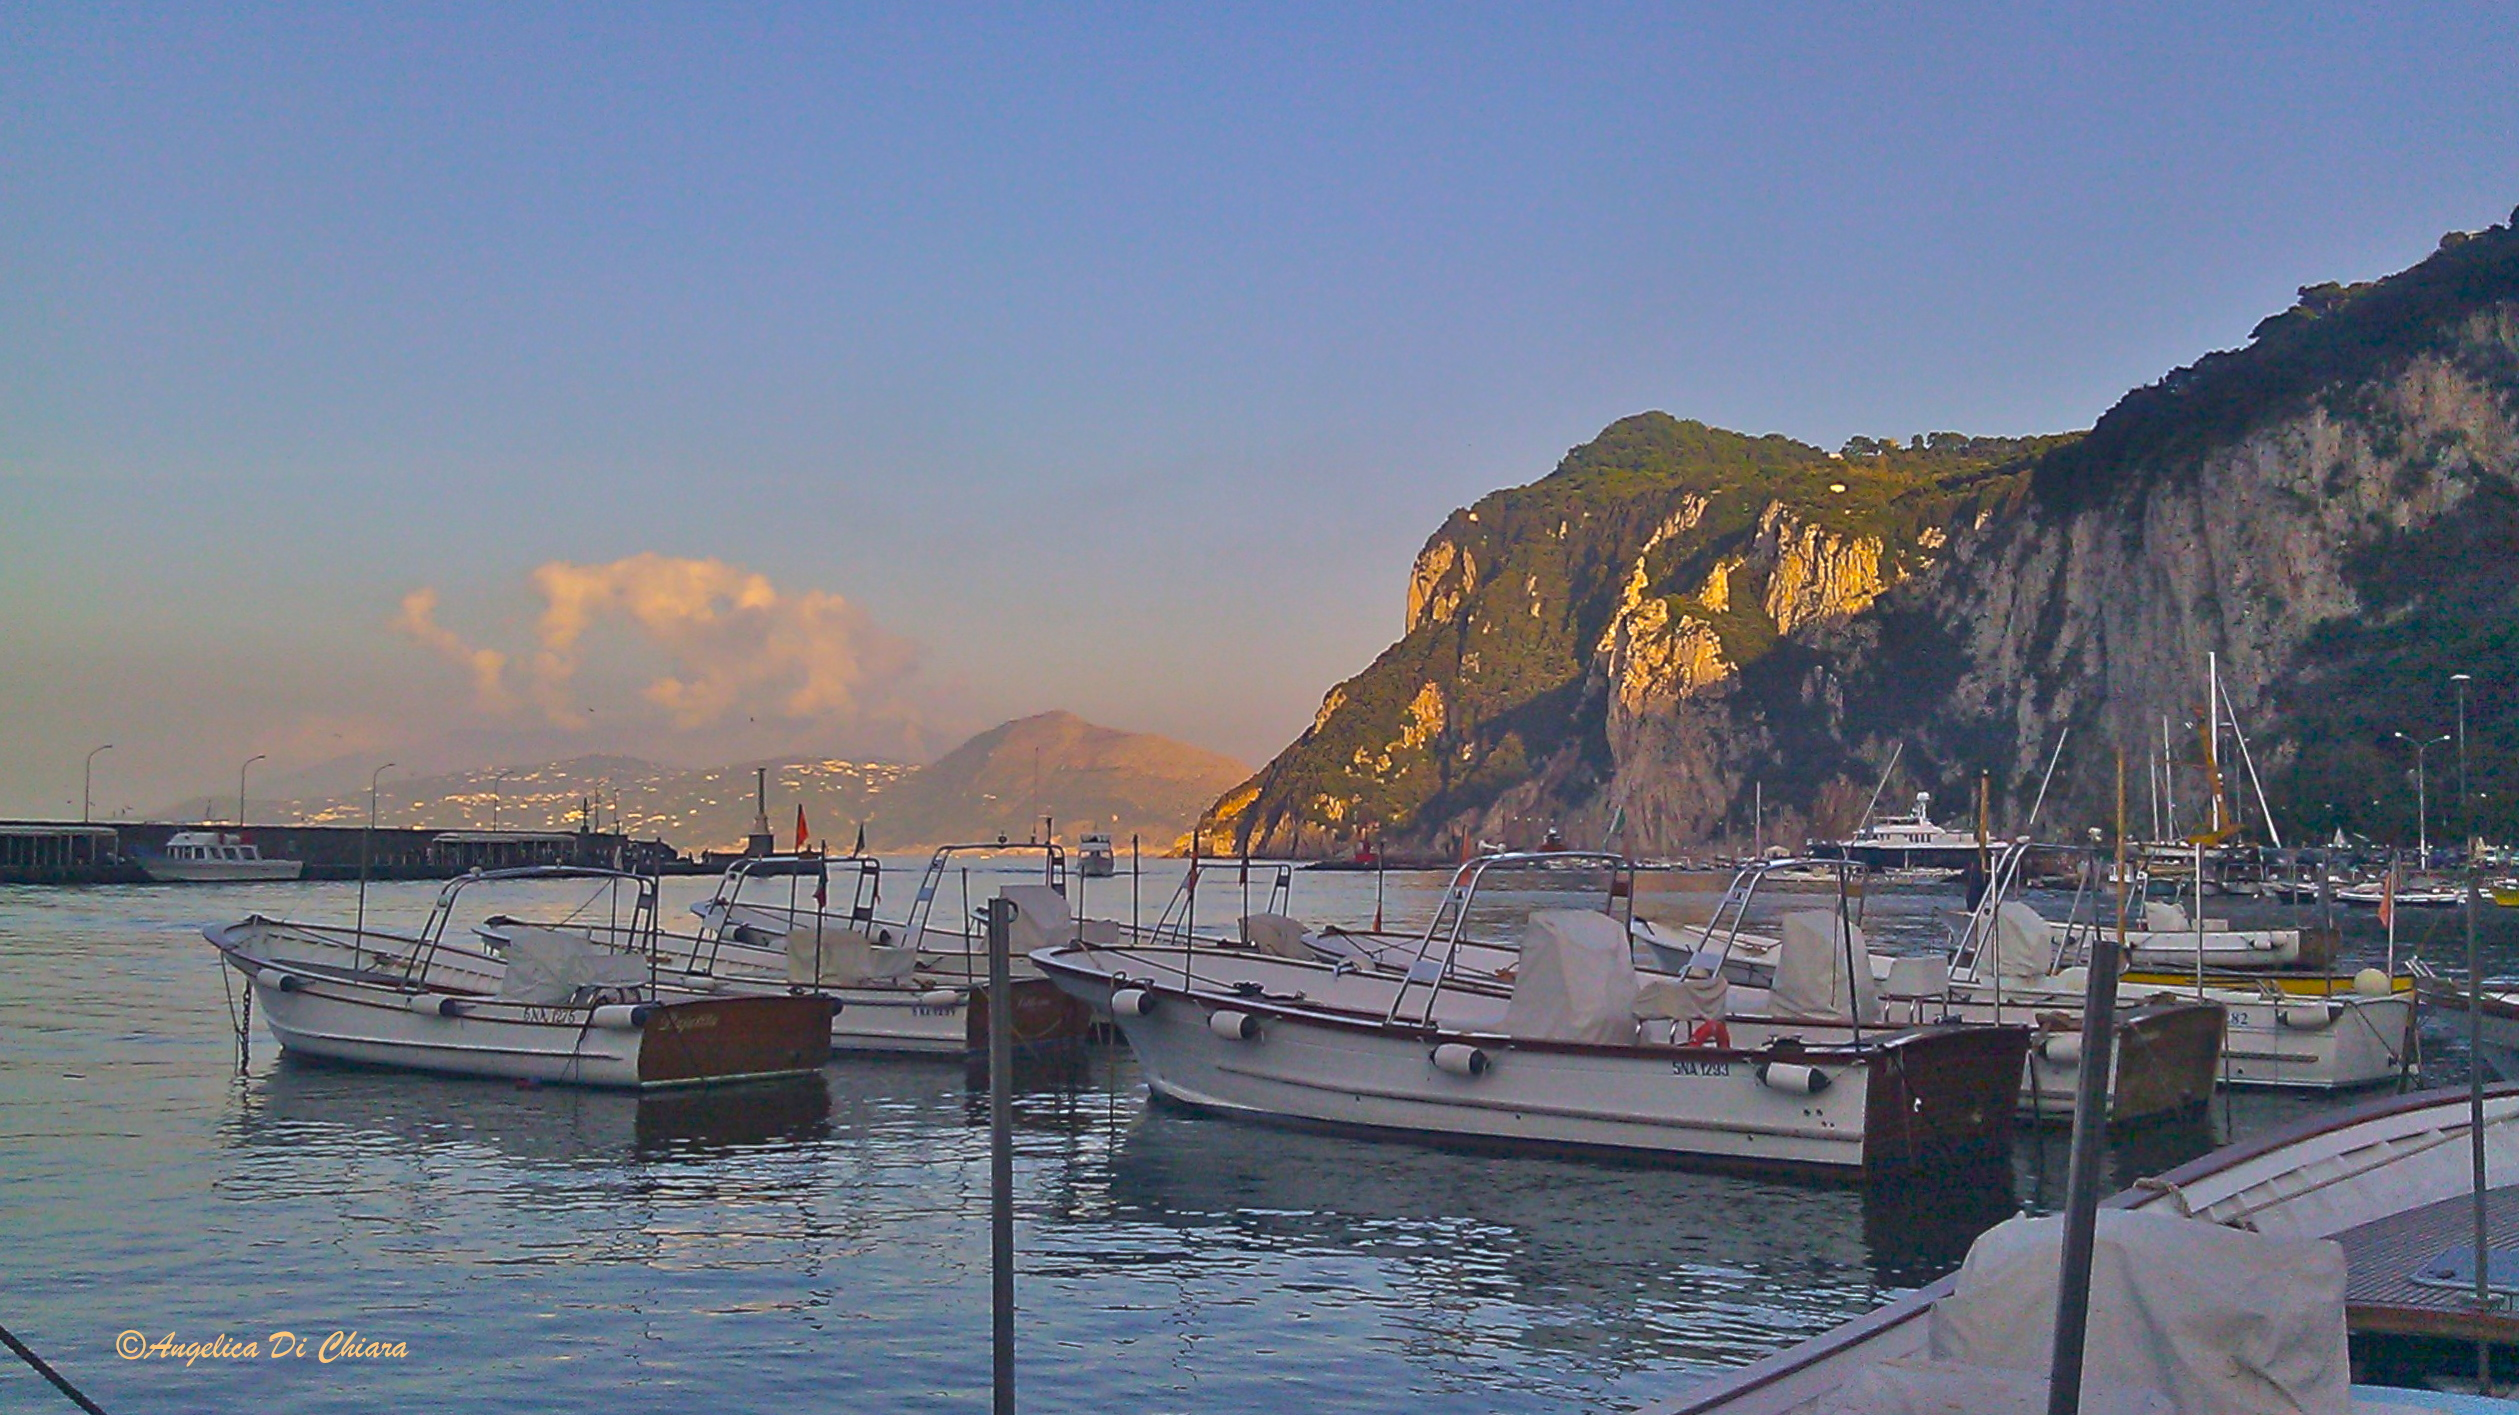 Capri-boatsSigned